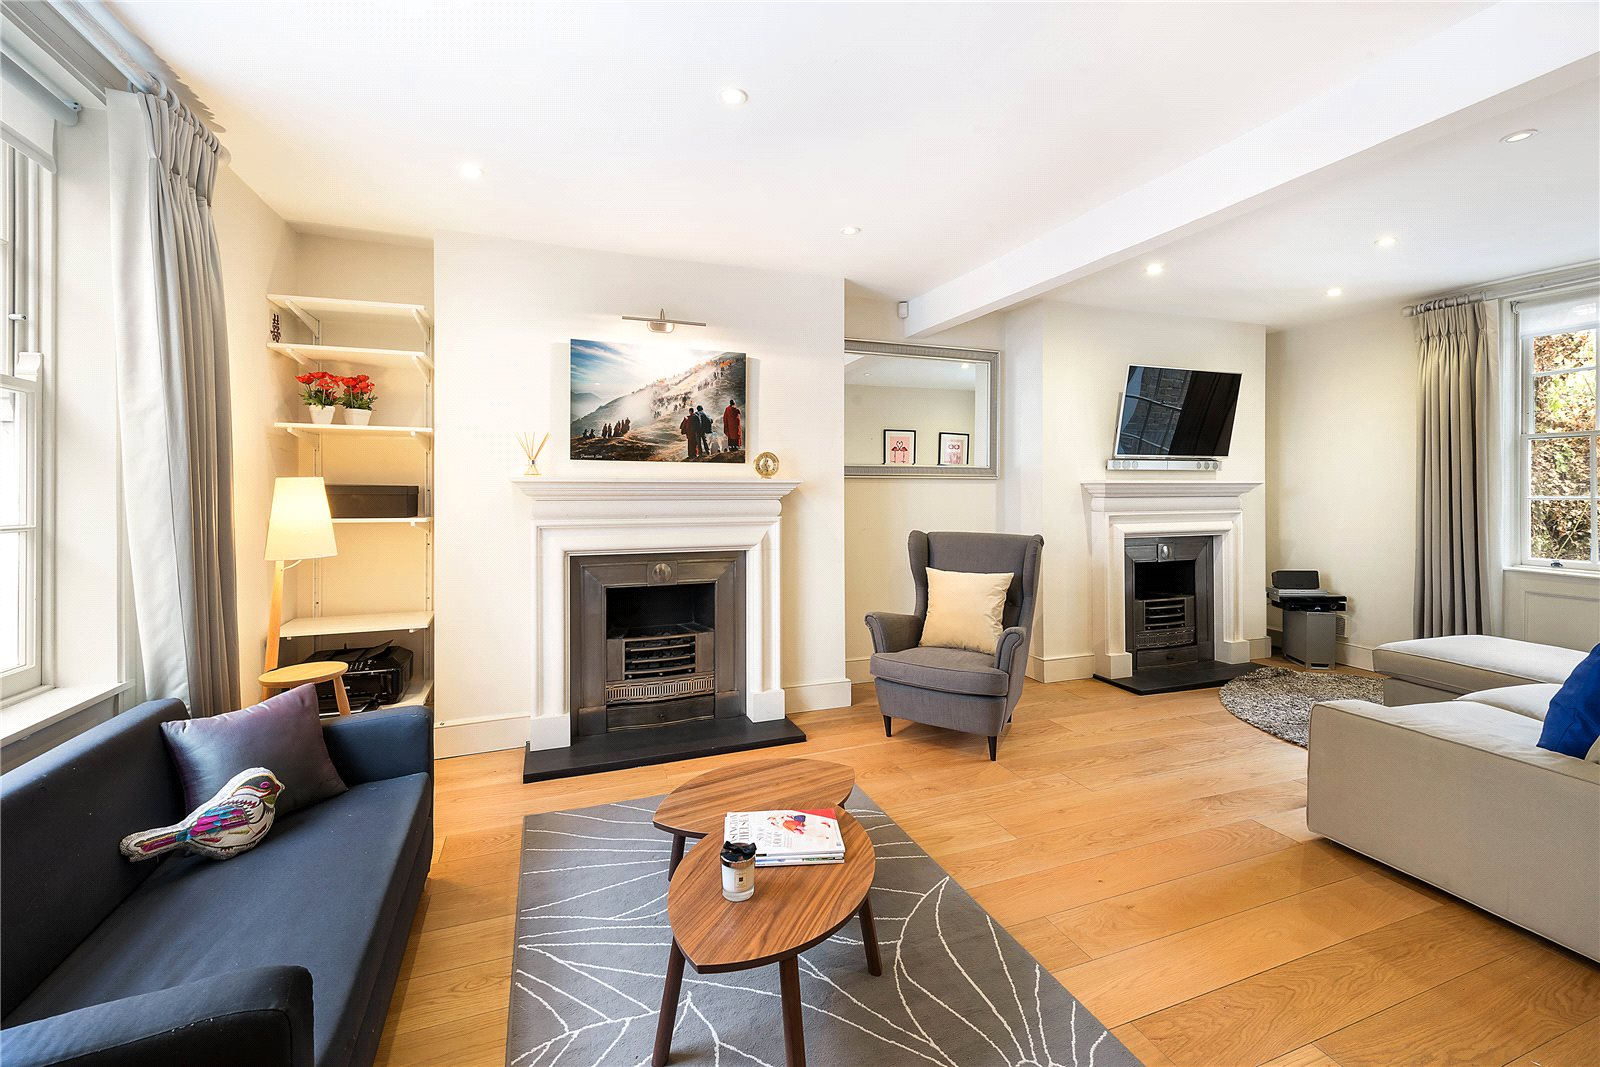 Single Family Home for Sale at Seymour Walk, Chelsea, London, SW10 Chelsea, London, England